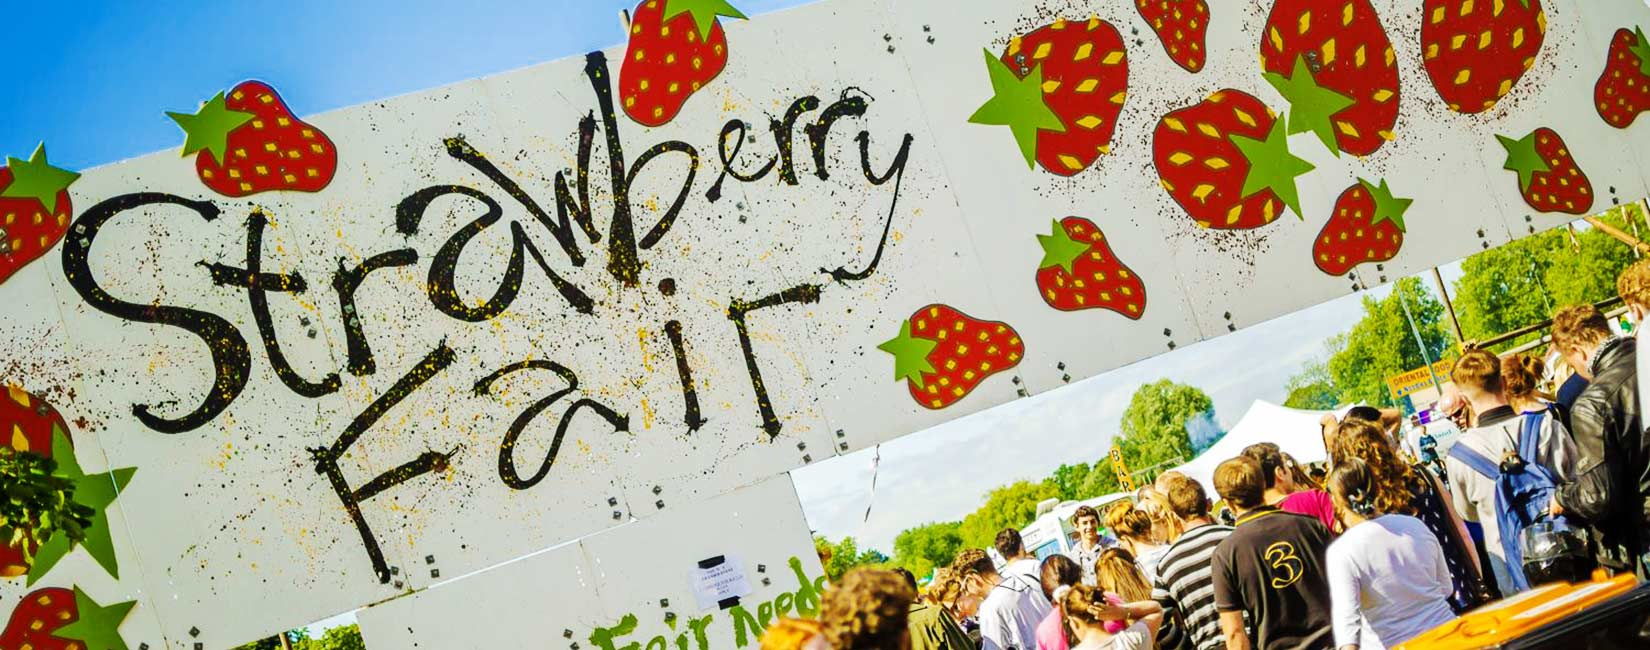 strawberry-fair-festival